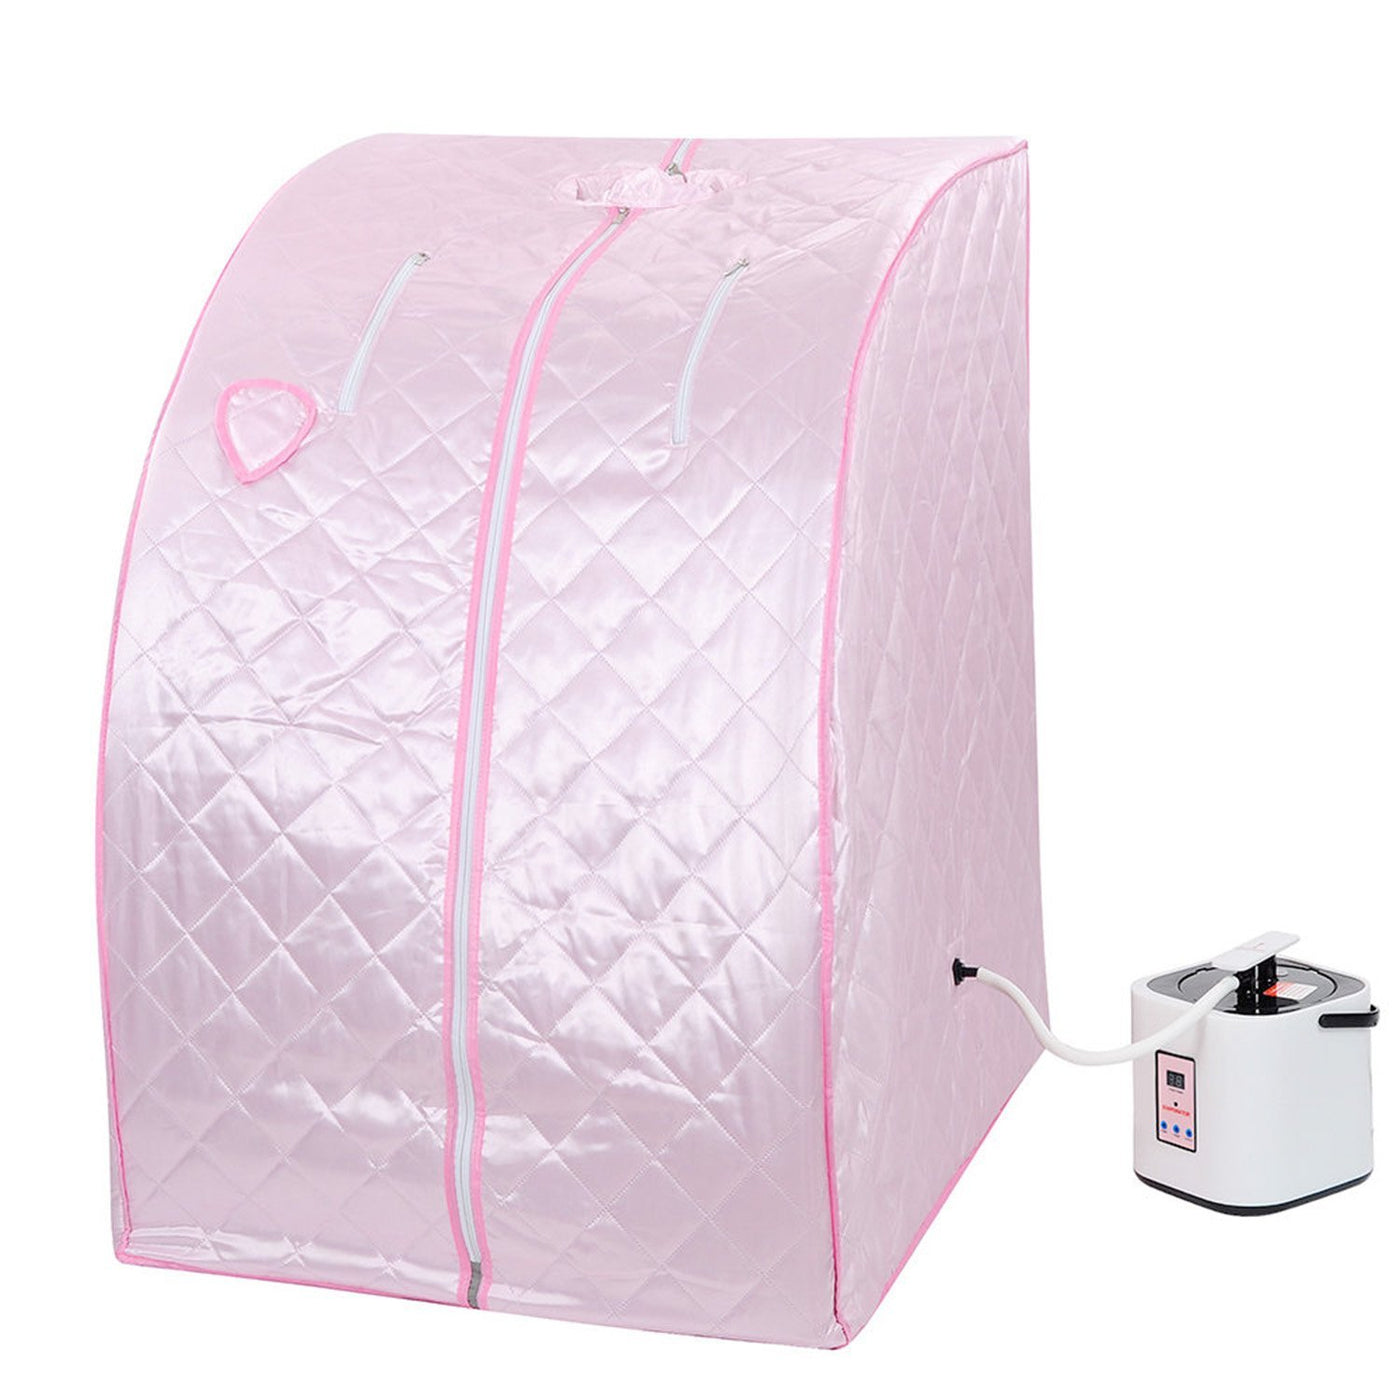 2L Portable Steam Sauna with Chair